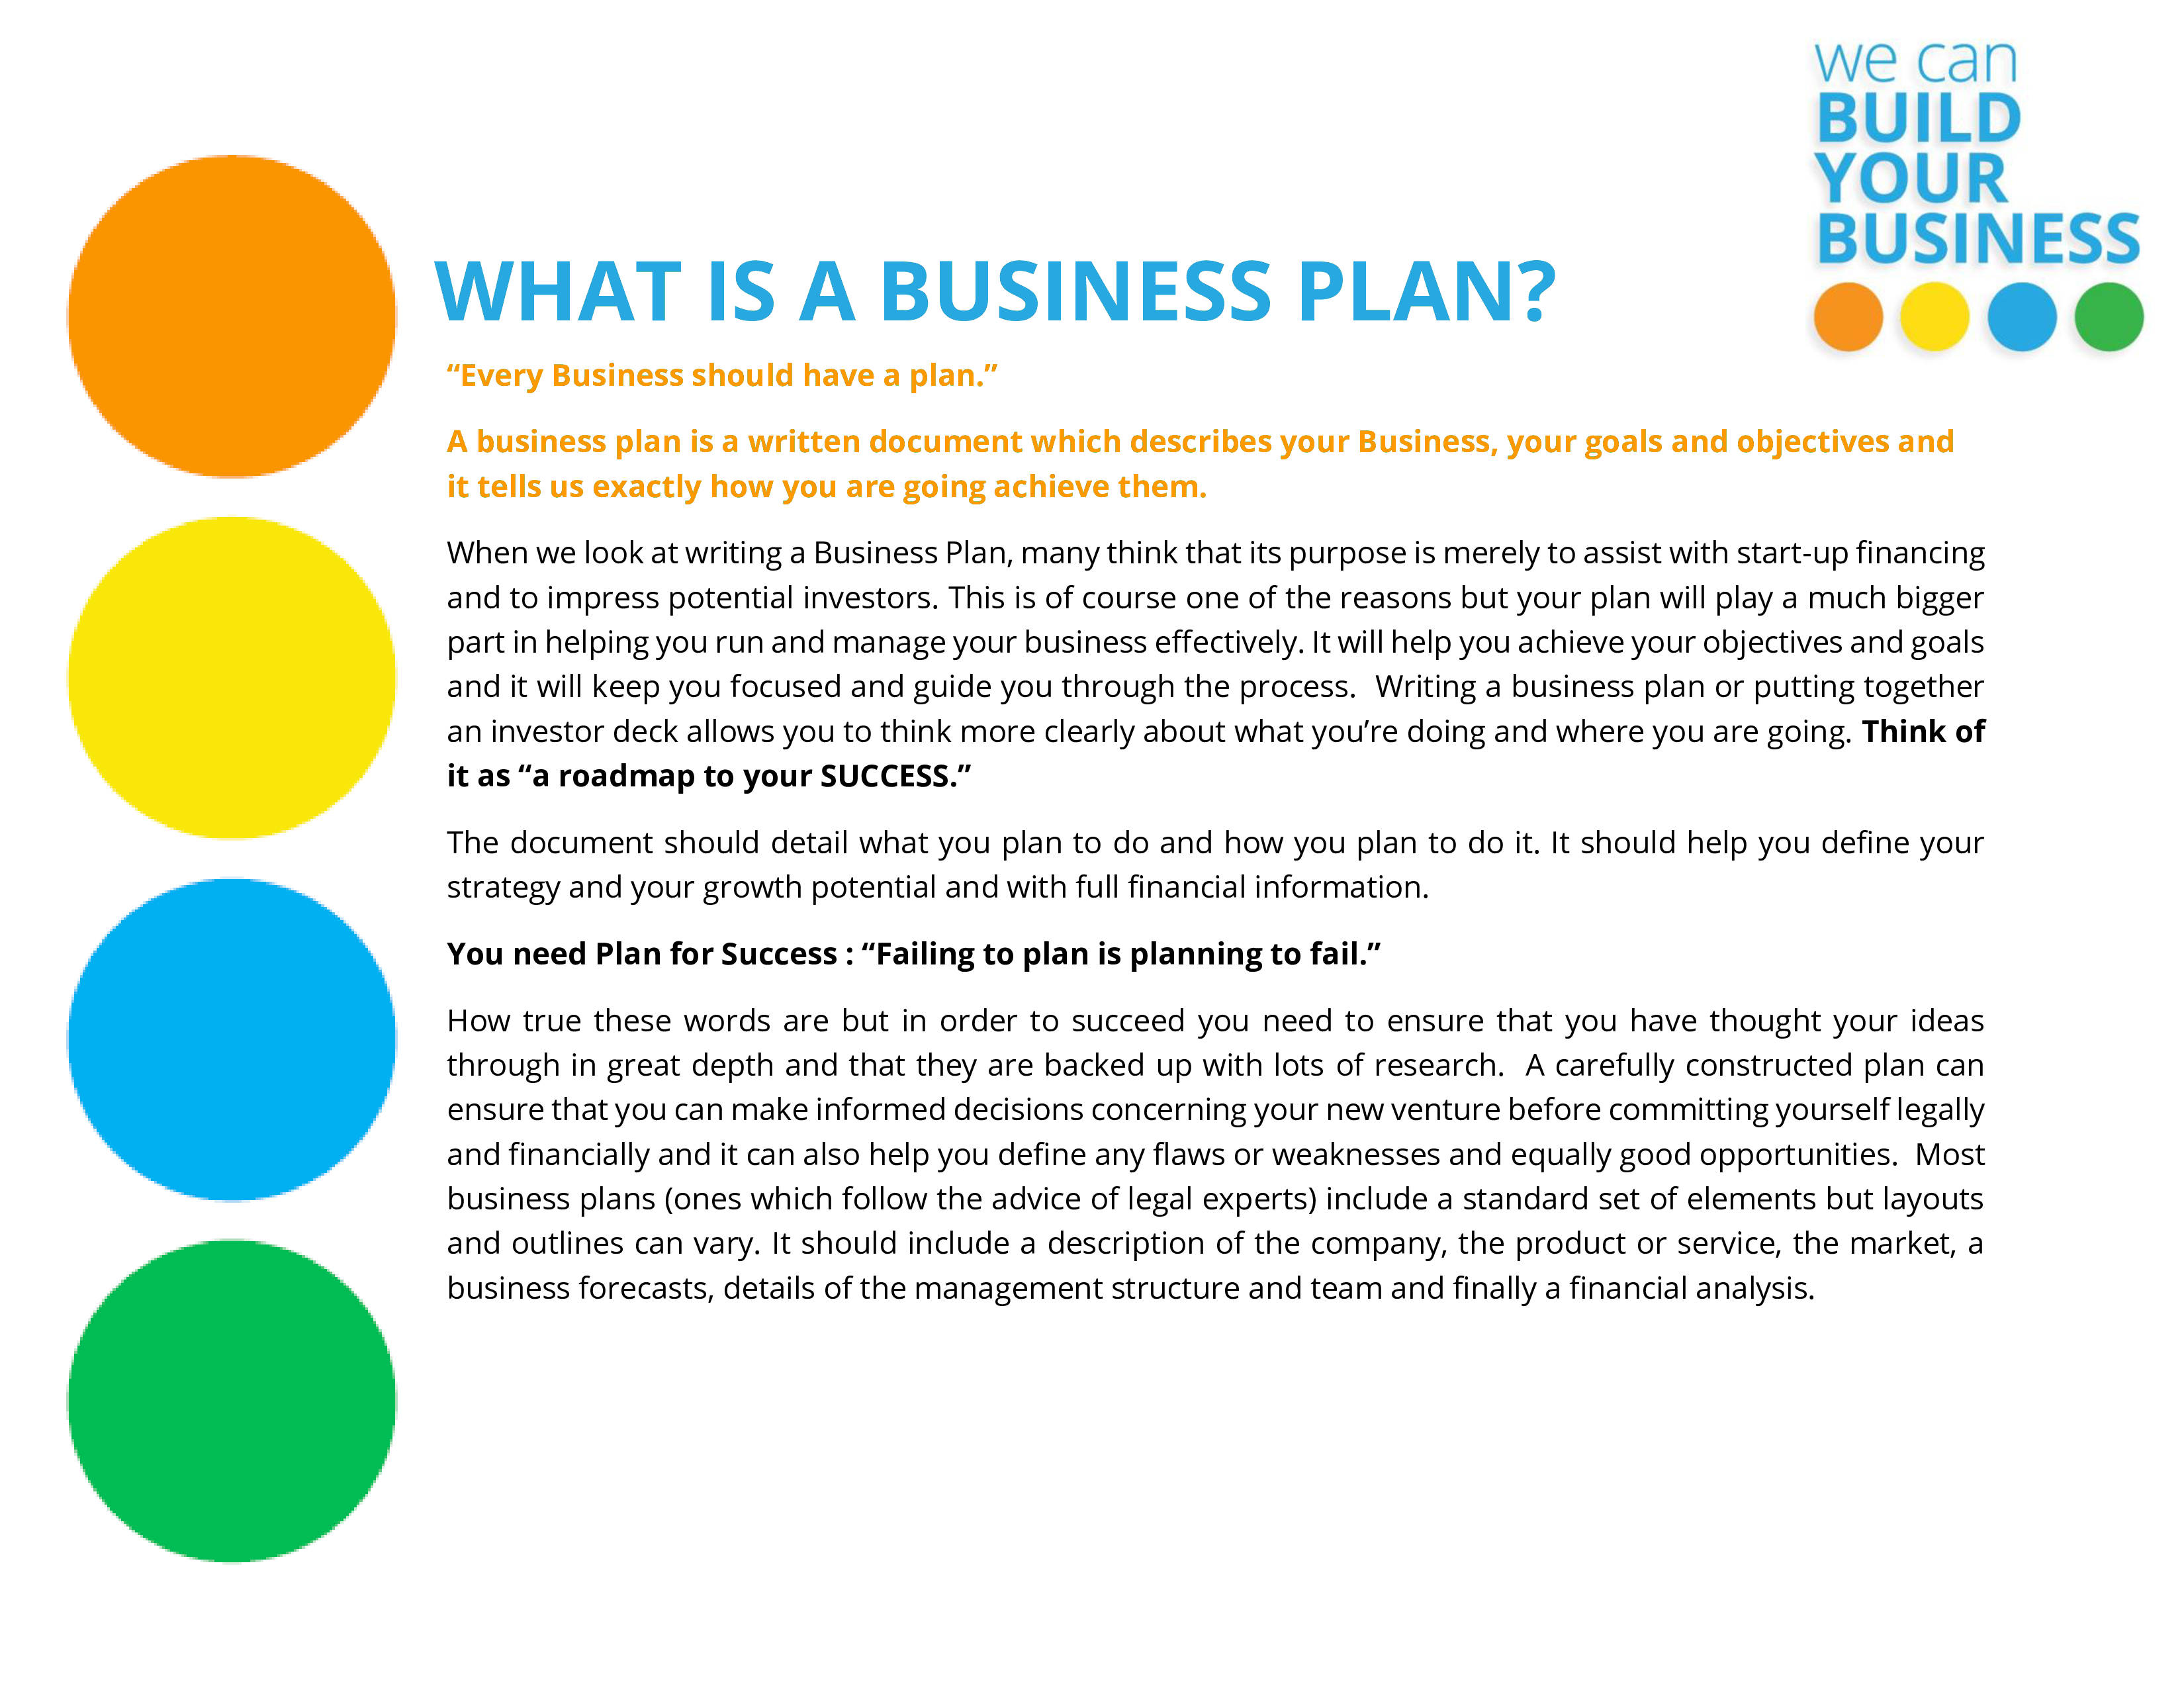 Business Plan Guidance Template main image